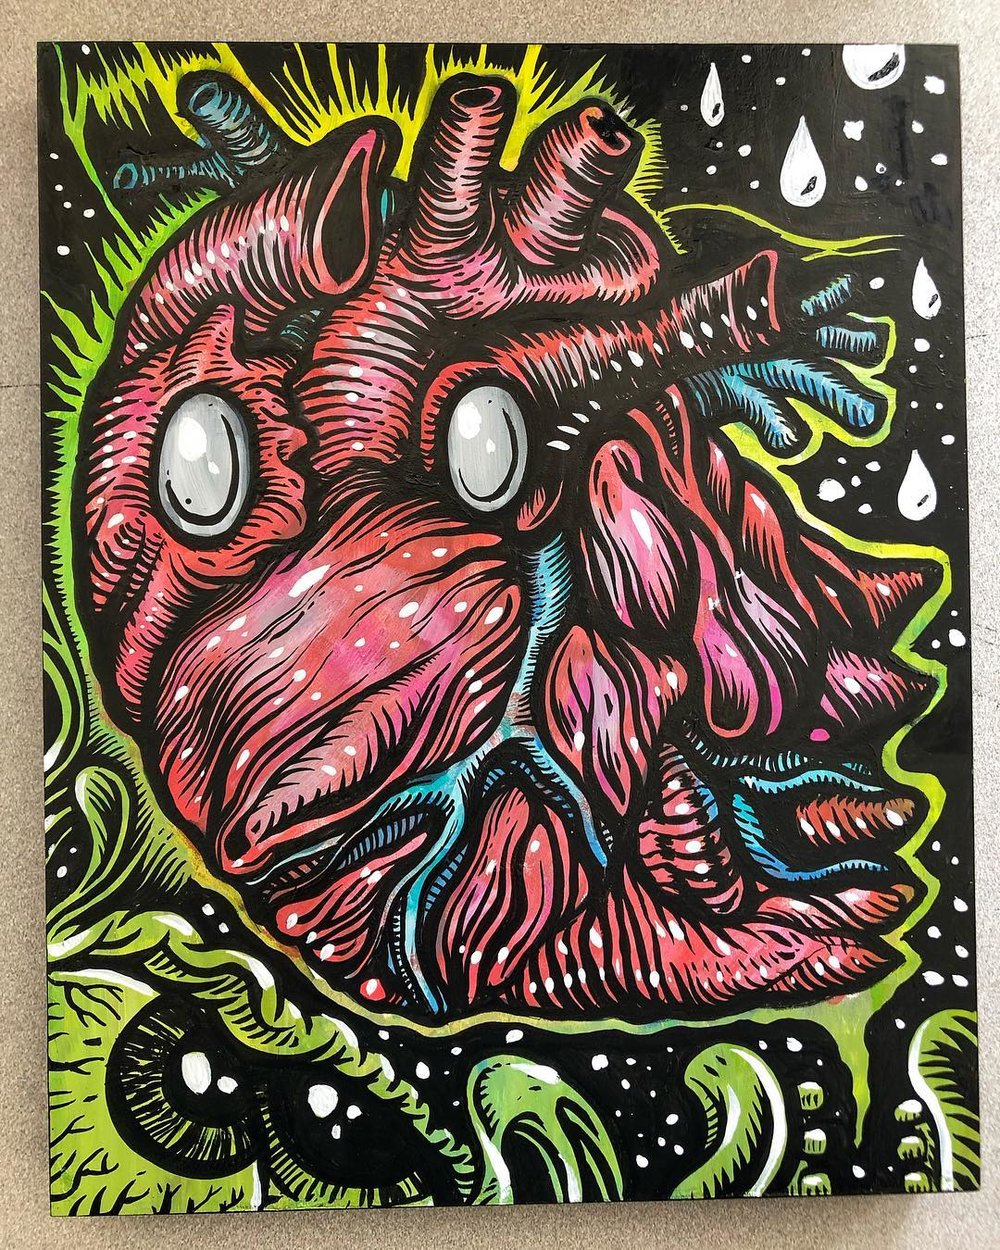 Vicky Valves - Vicky is a heart ghost created specifically for the event. Painted on gesso board with acrylics and ink.